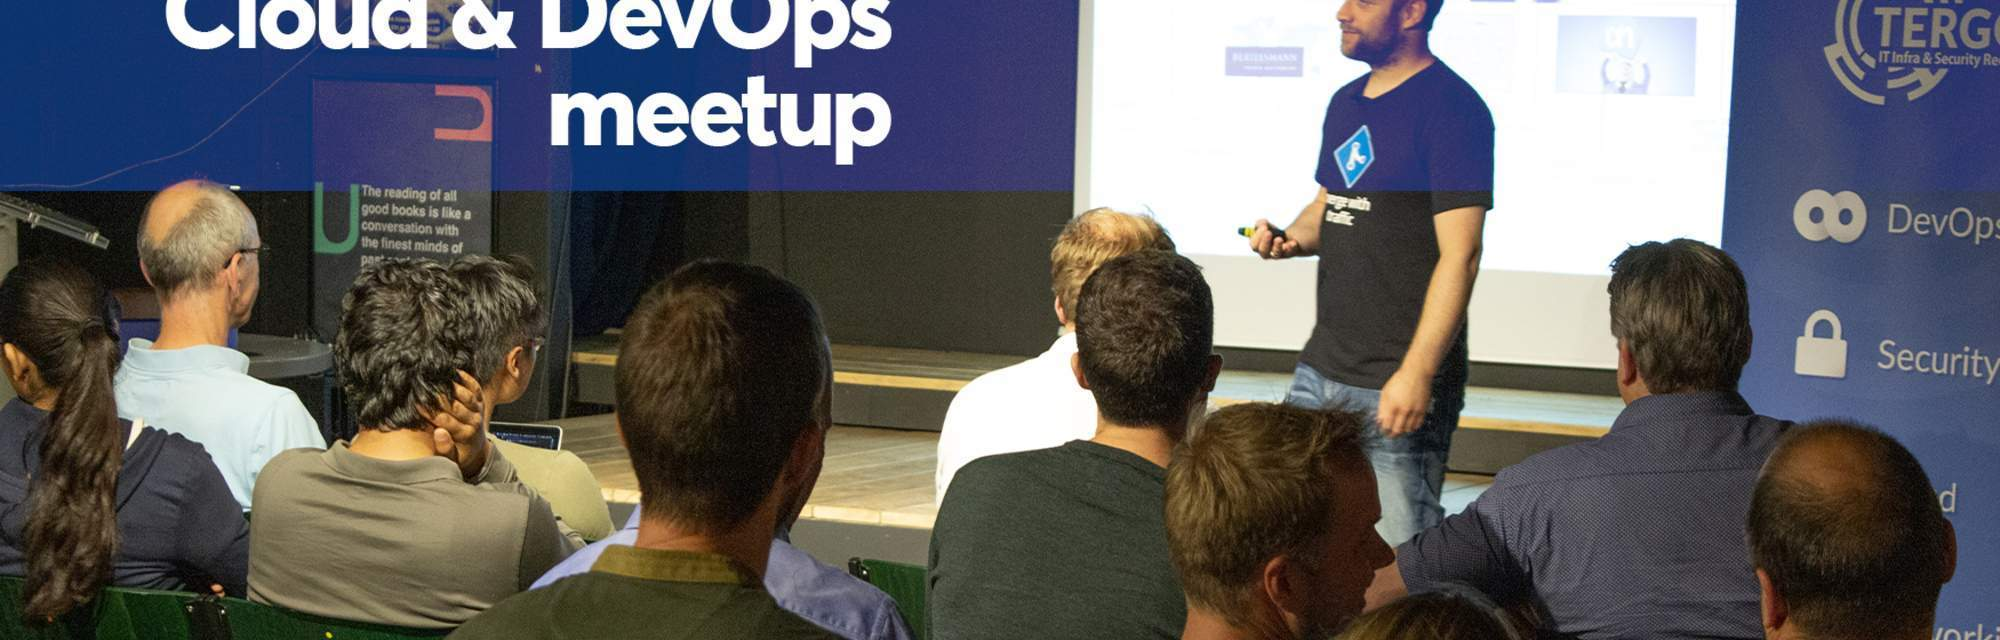 Cloud & devops meetup